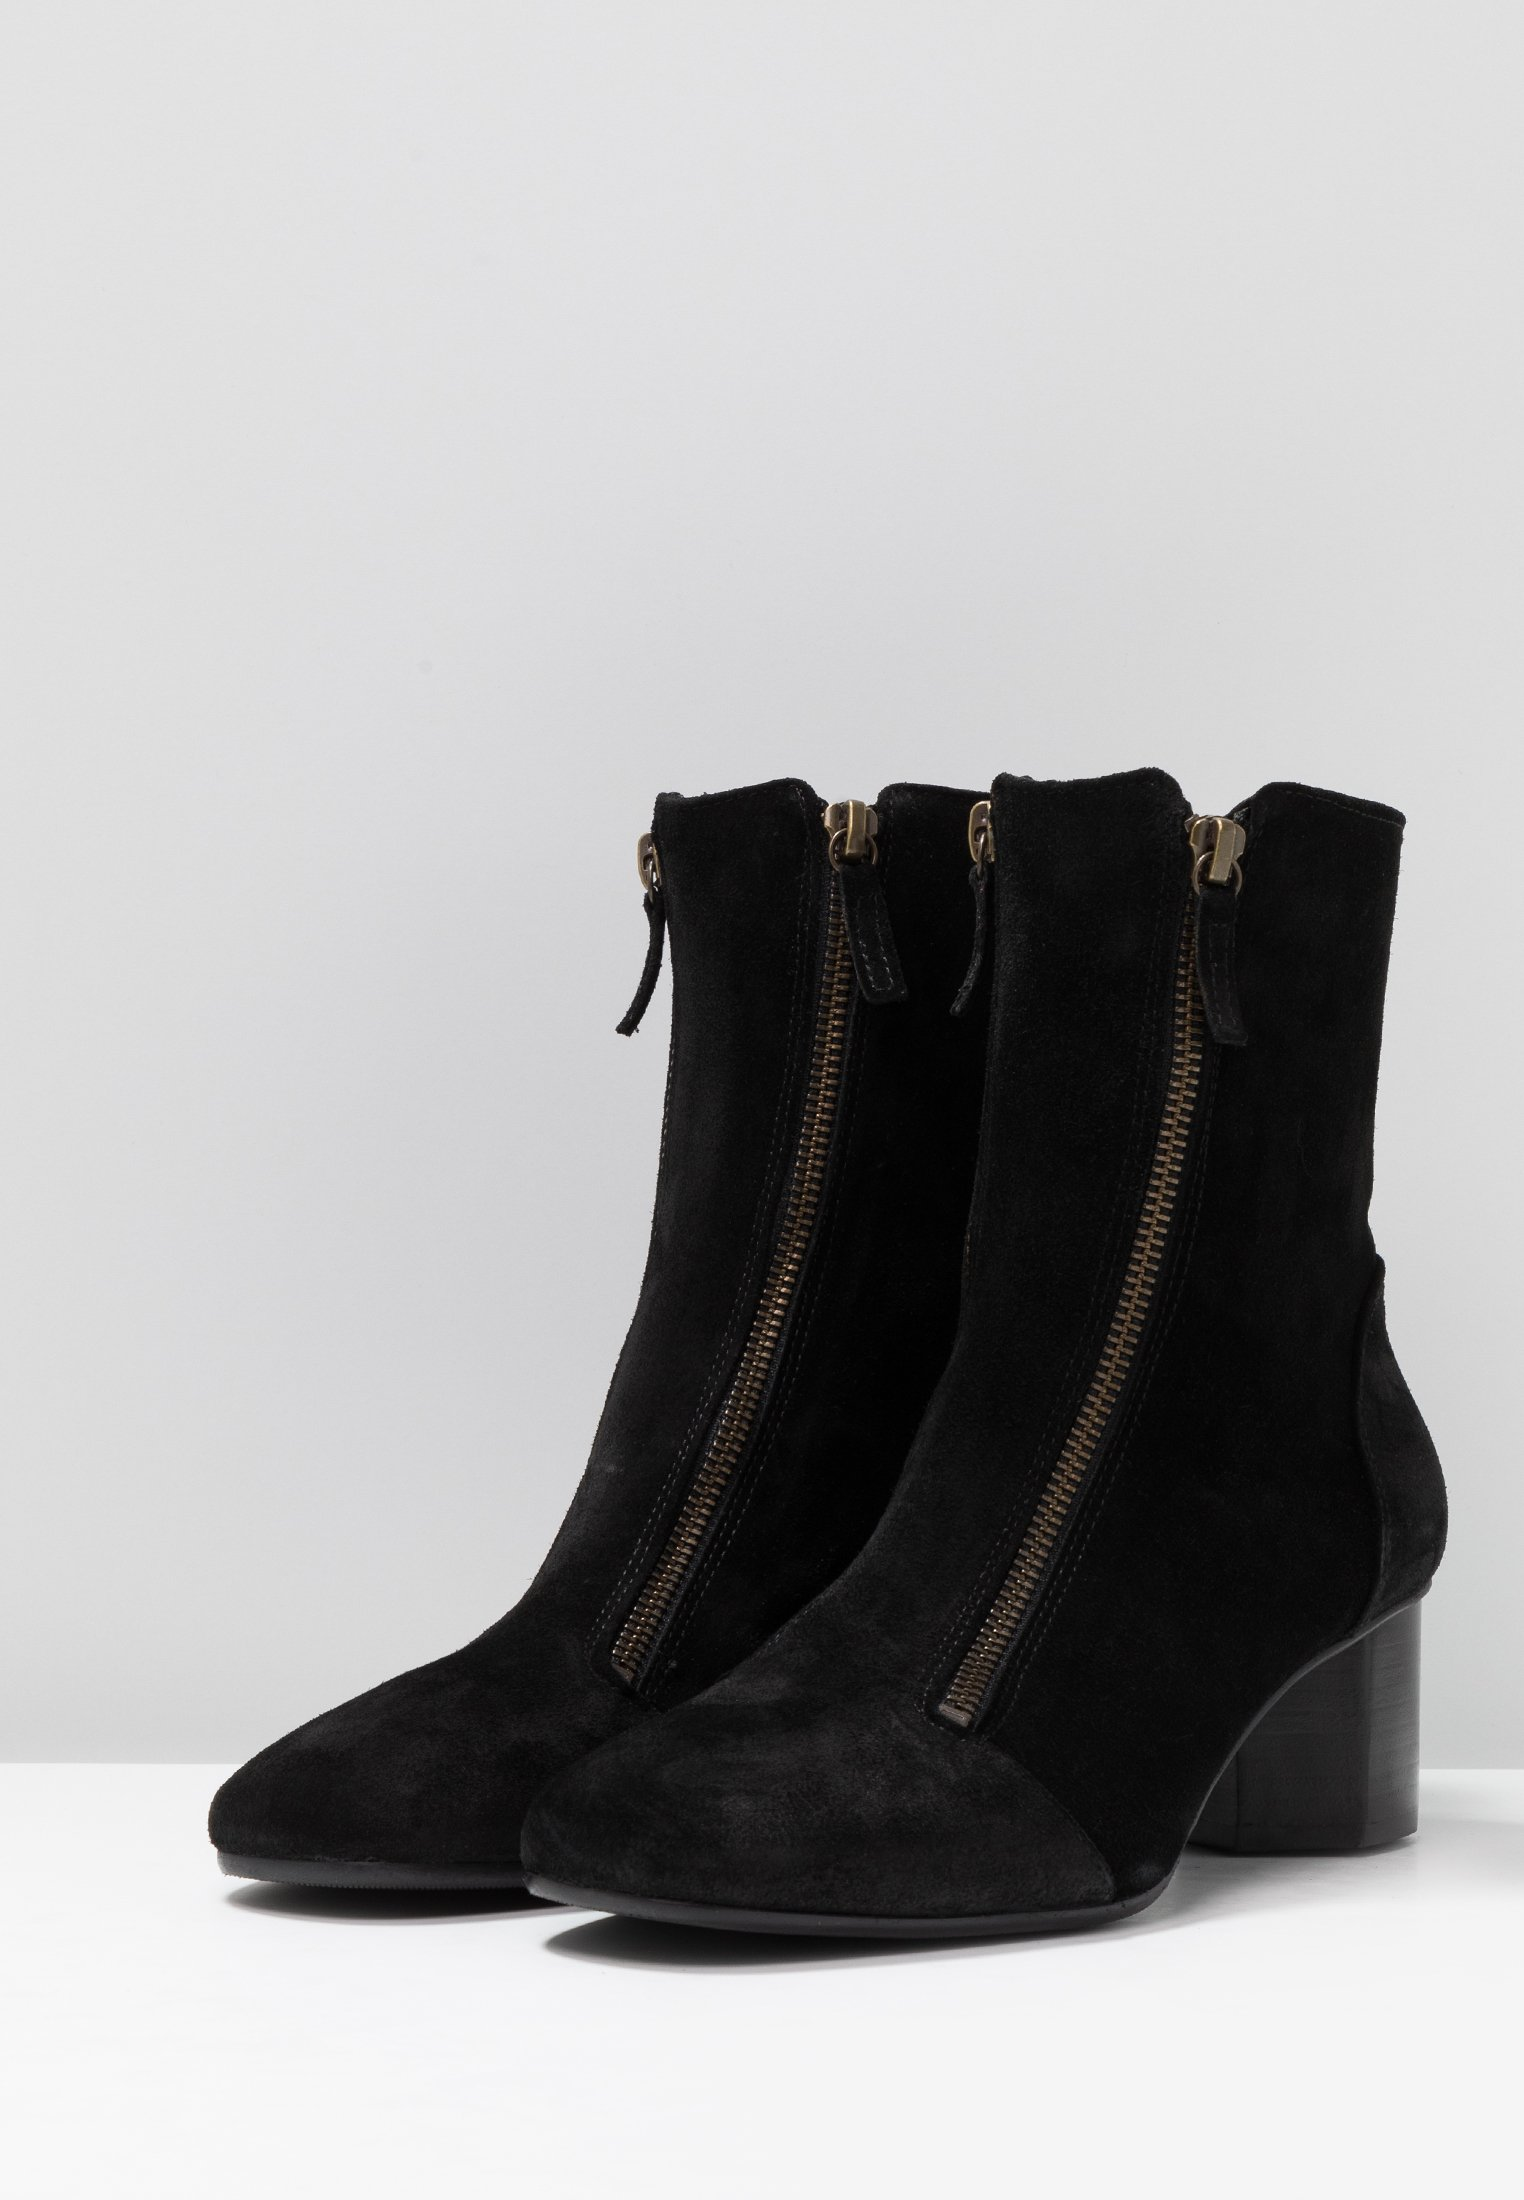 Best Seller Cheapest Homers DANY - Classic ankle boots - black | women's shoes 2020 lFOKd